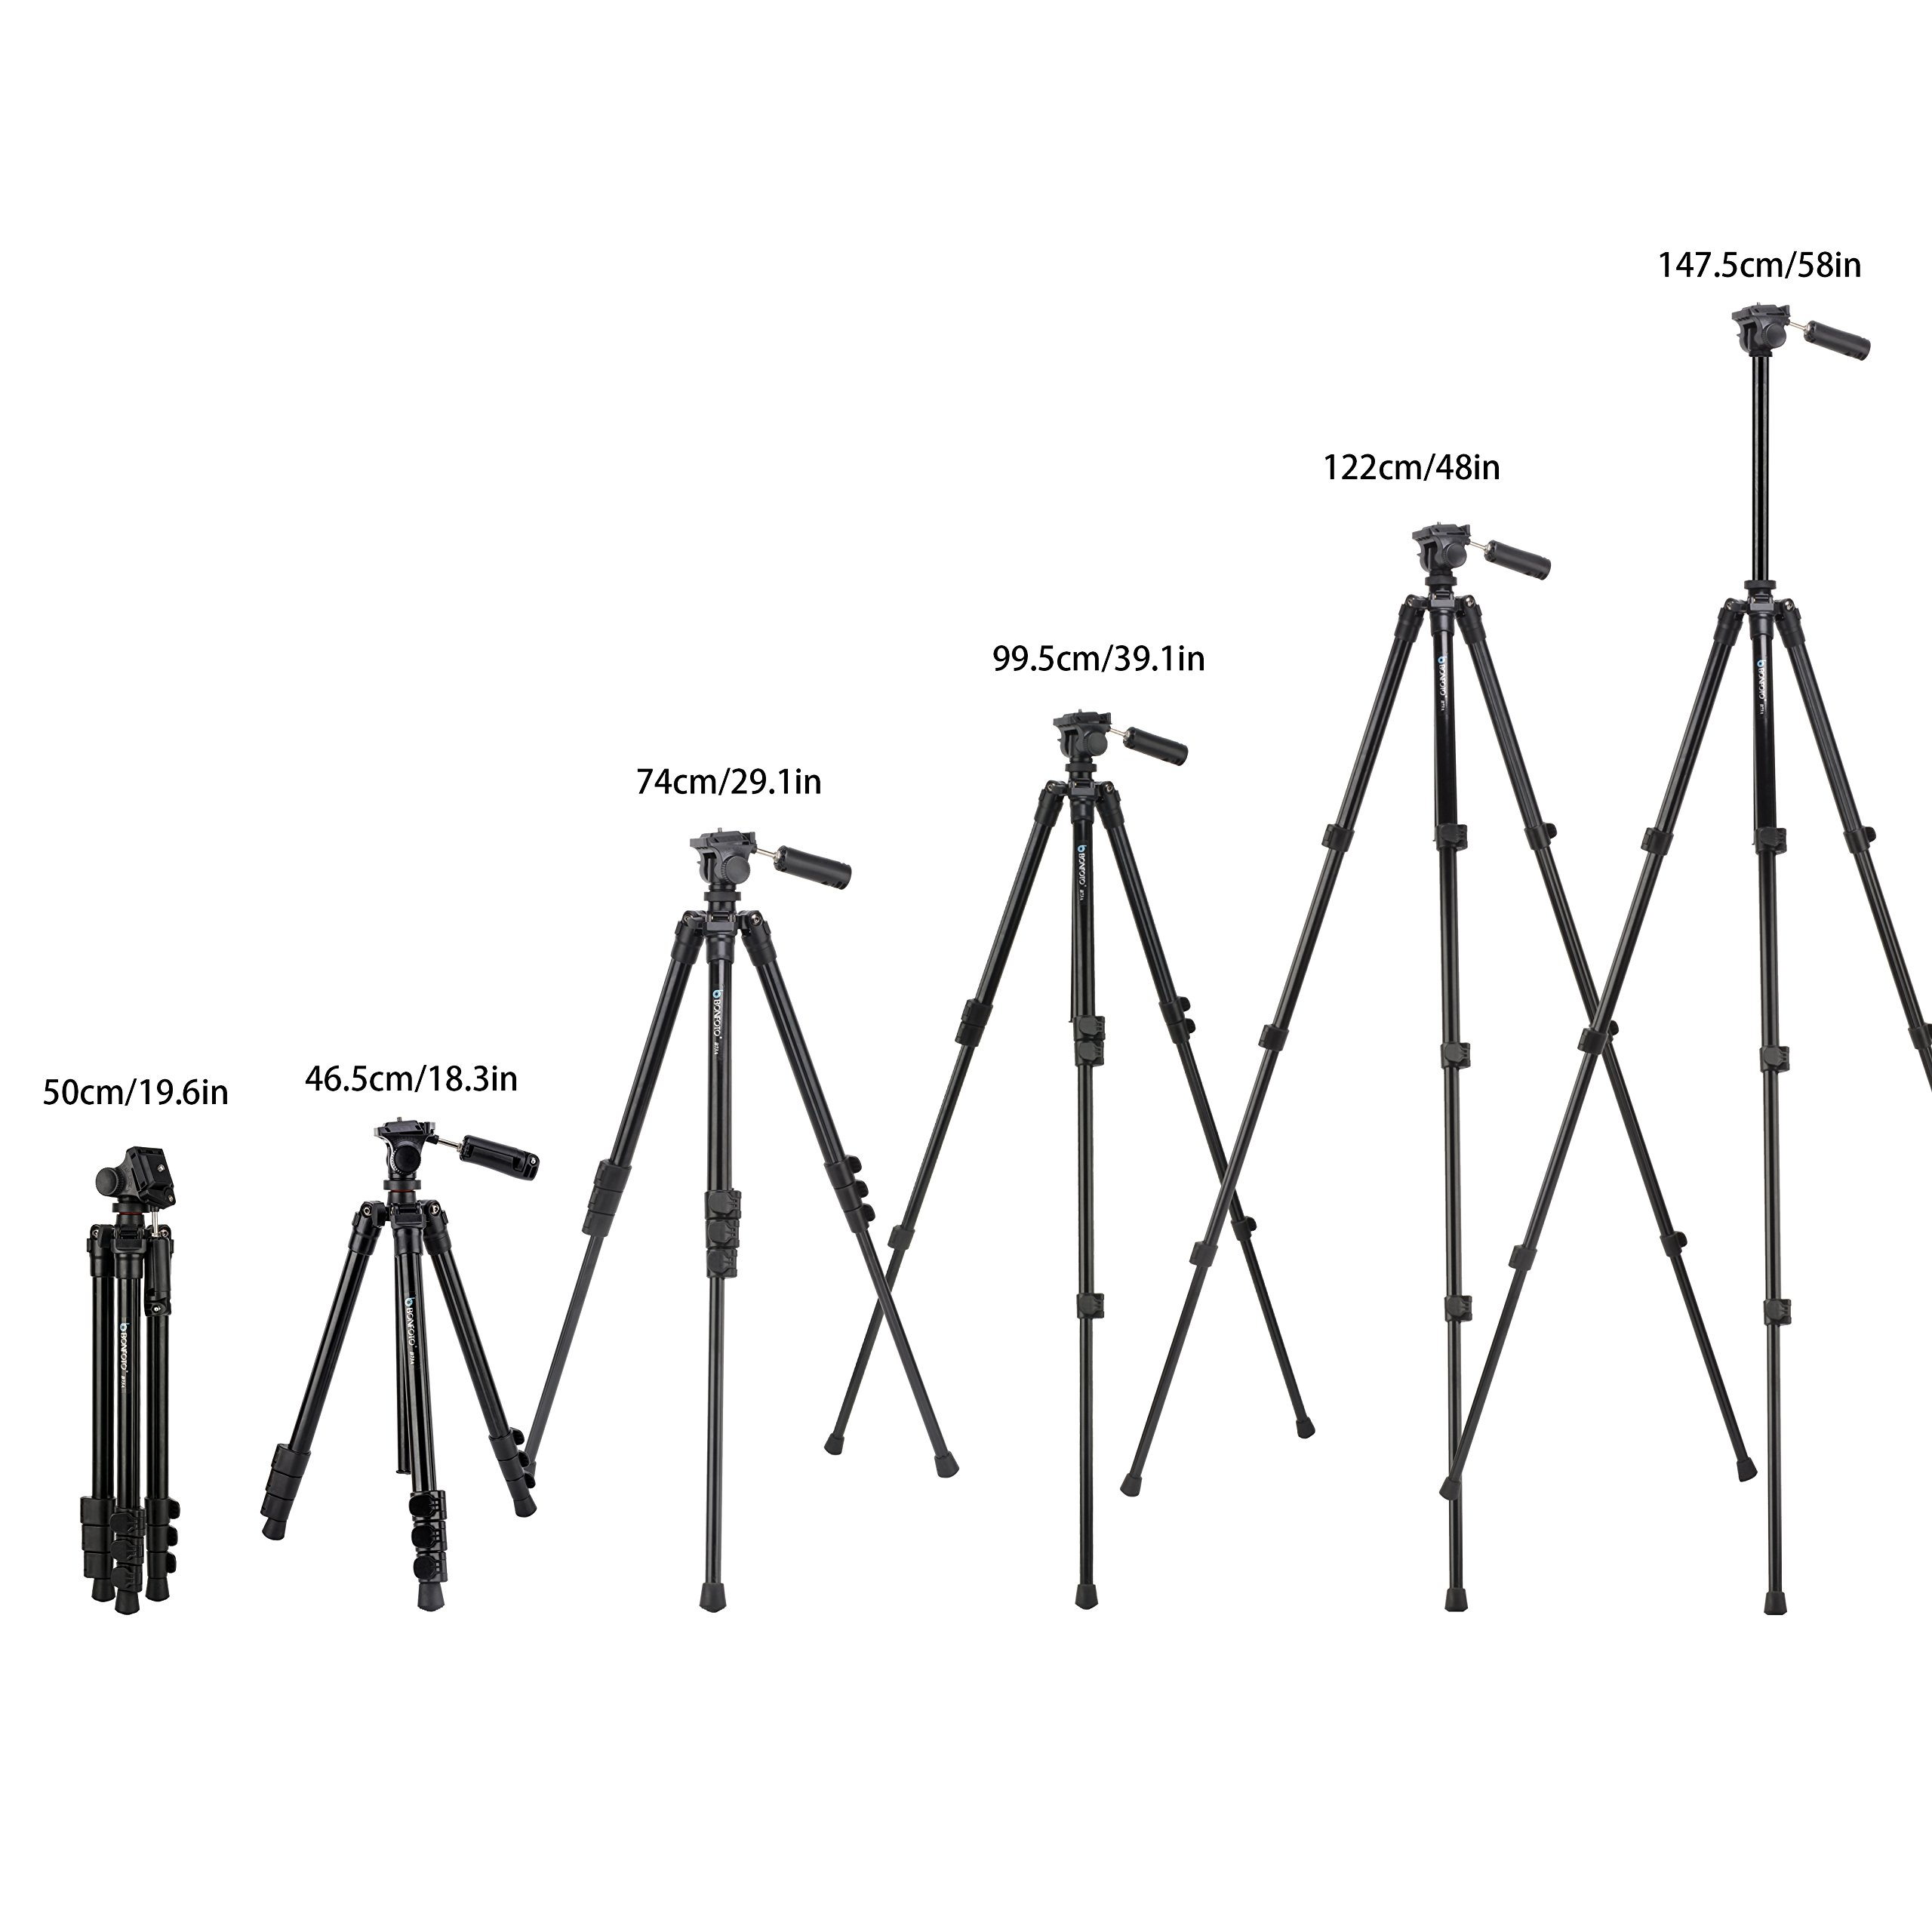 """BONFOTO B73A 58"""" Portable Aluminum Alloy Lightweight Camera Travel Tripod and Monopod with Panorama Pan Head,Quick Release Plate and Carry Bag for Smartphones and Most DSLR Cameras with 1/4\"""